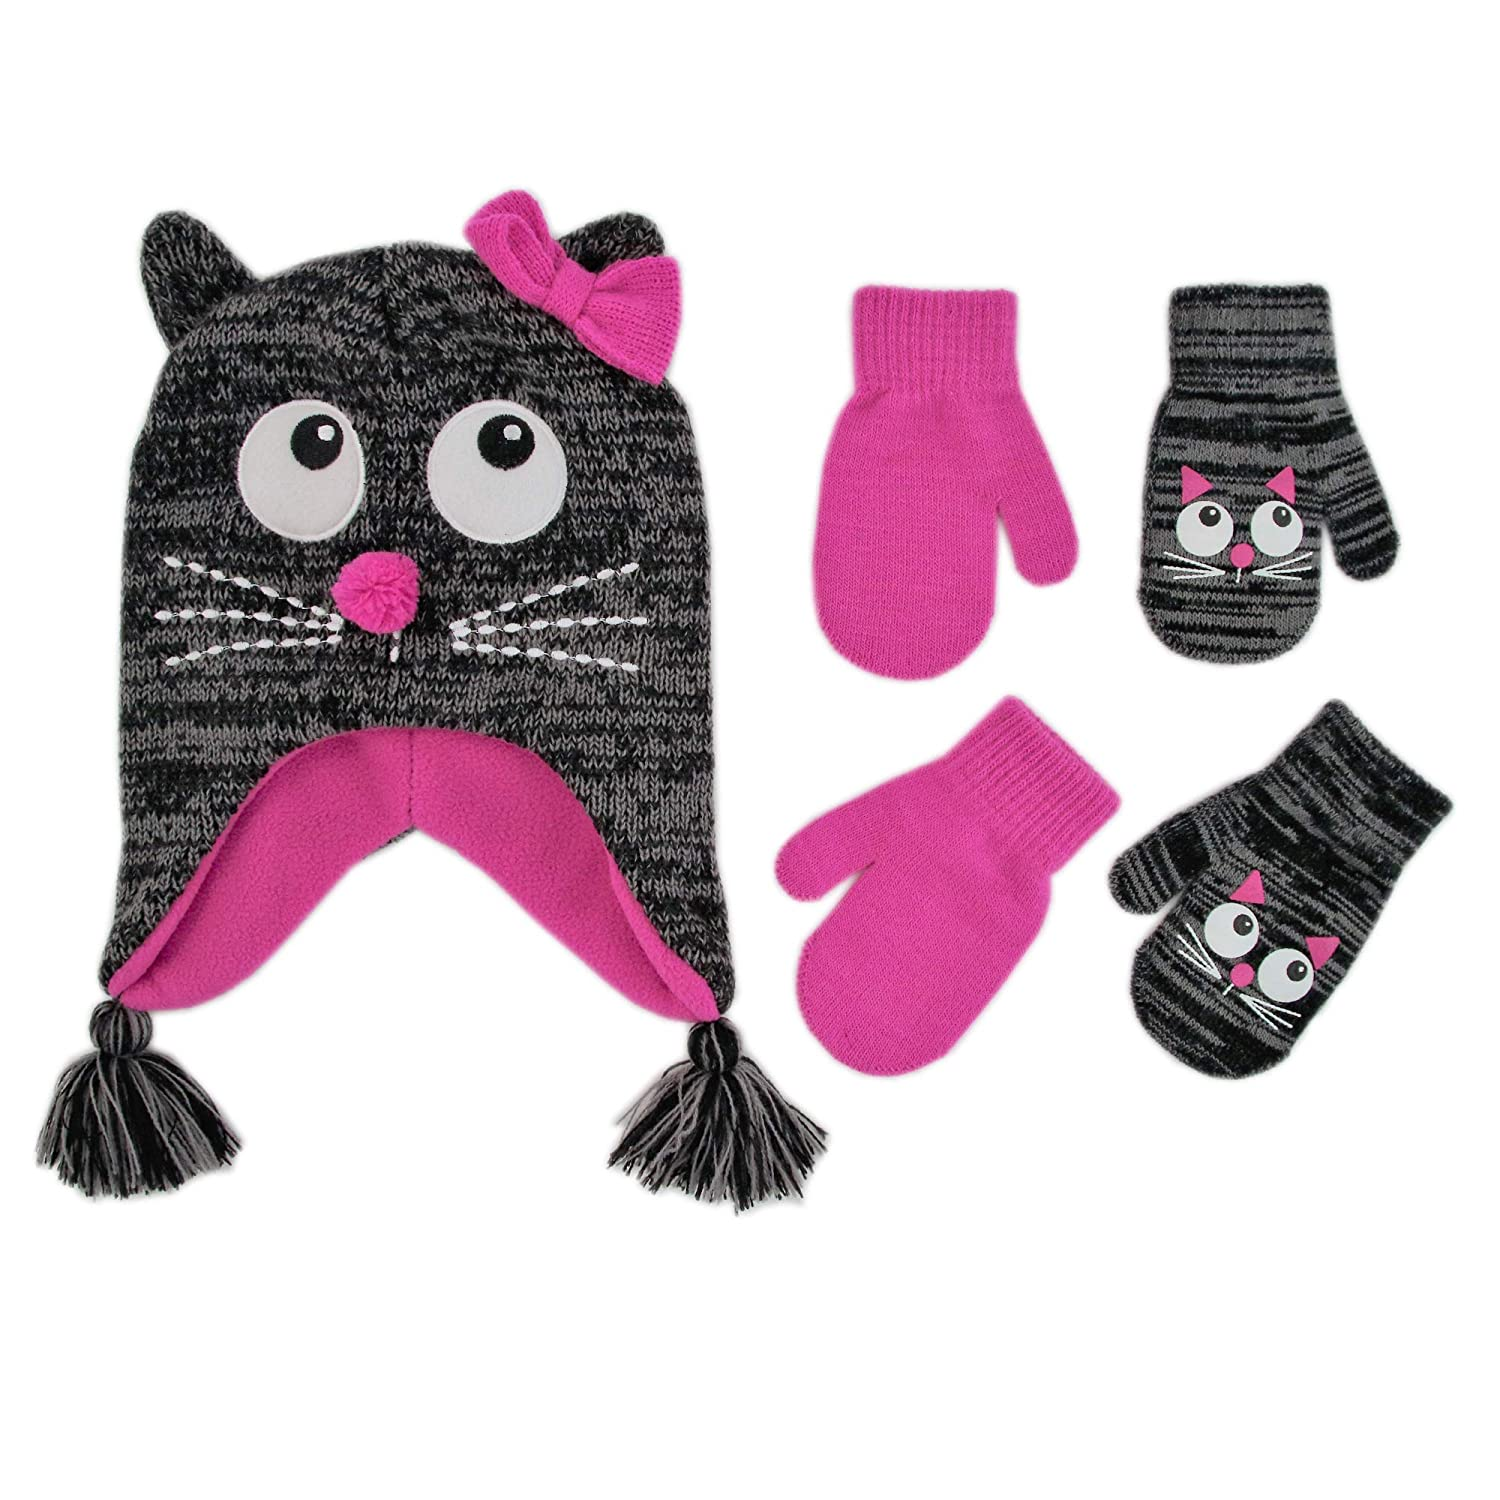 972c6a855 ABG Accessories Assorted Critter Designs Hat and 2 Pair Gloves or ...